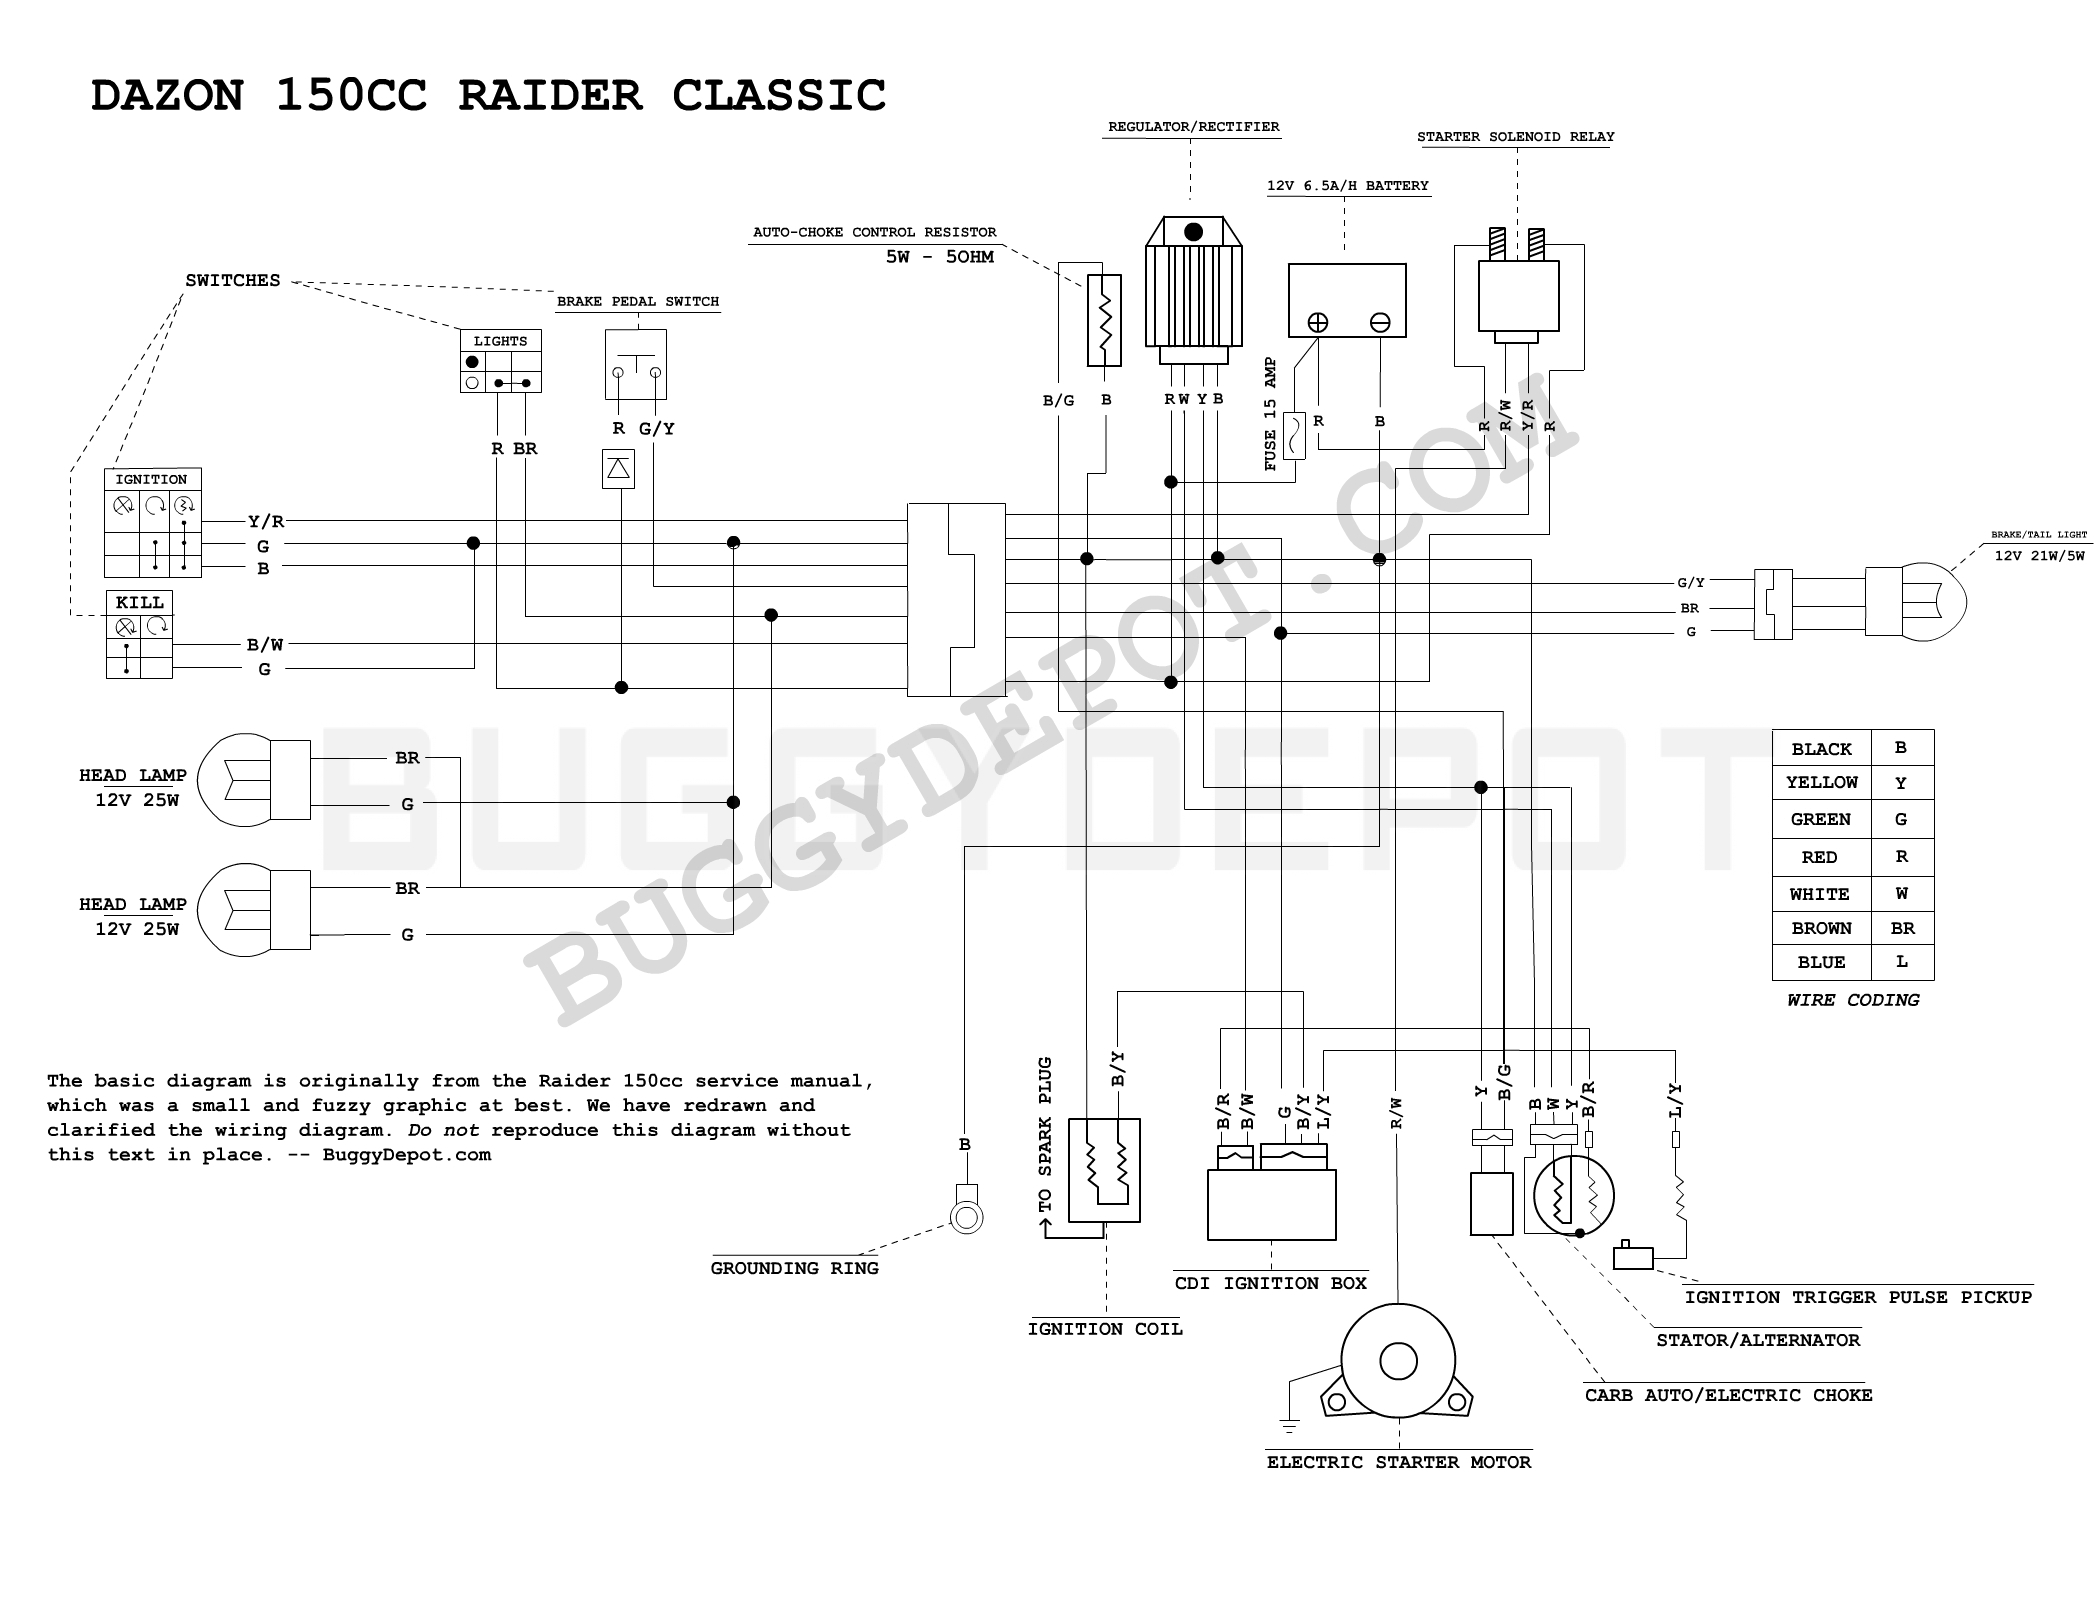 article_33_1278205207 gy6 150cc ignition troubleshooting guide no spark? buggy depot gy6 wiring harness diagram at alyssarenee.co